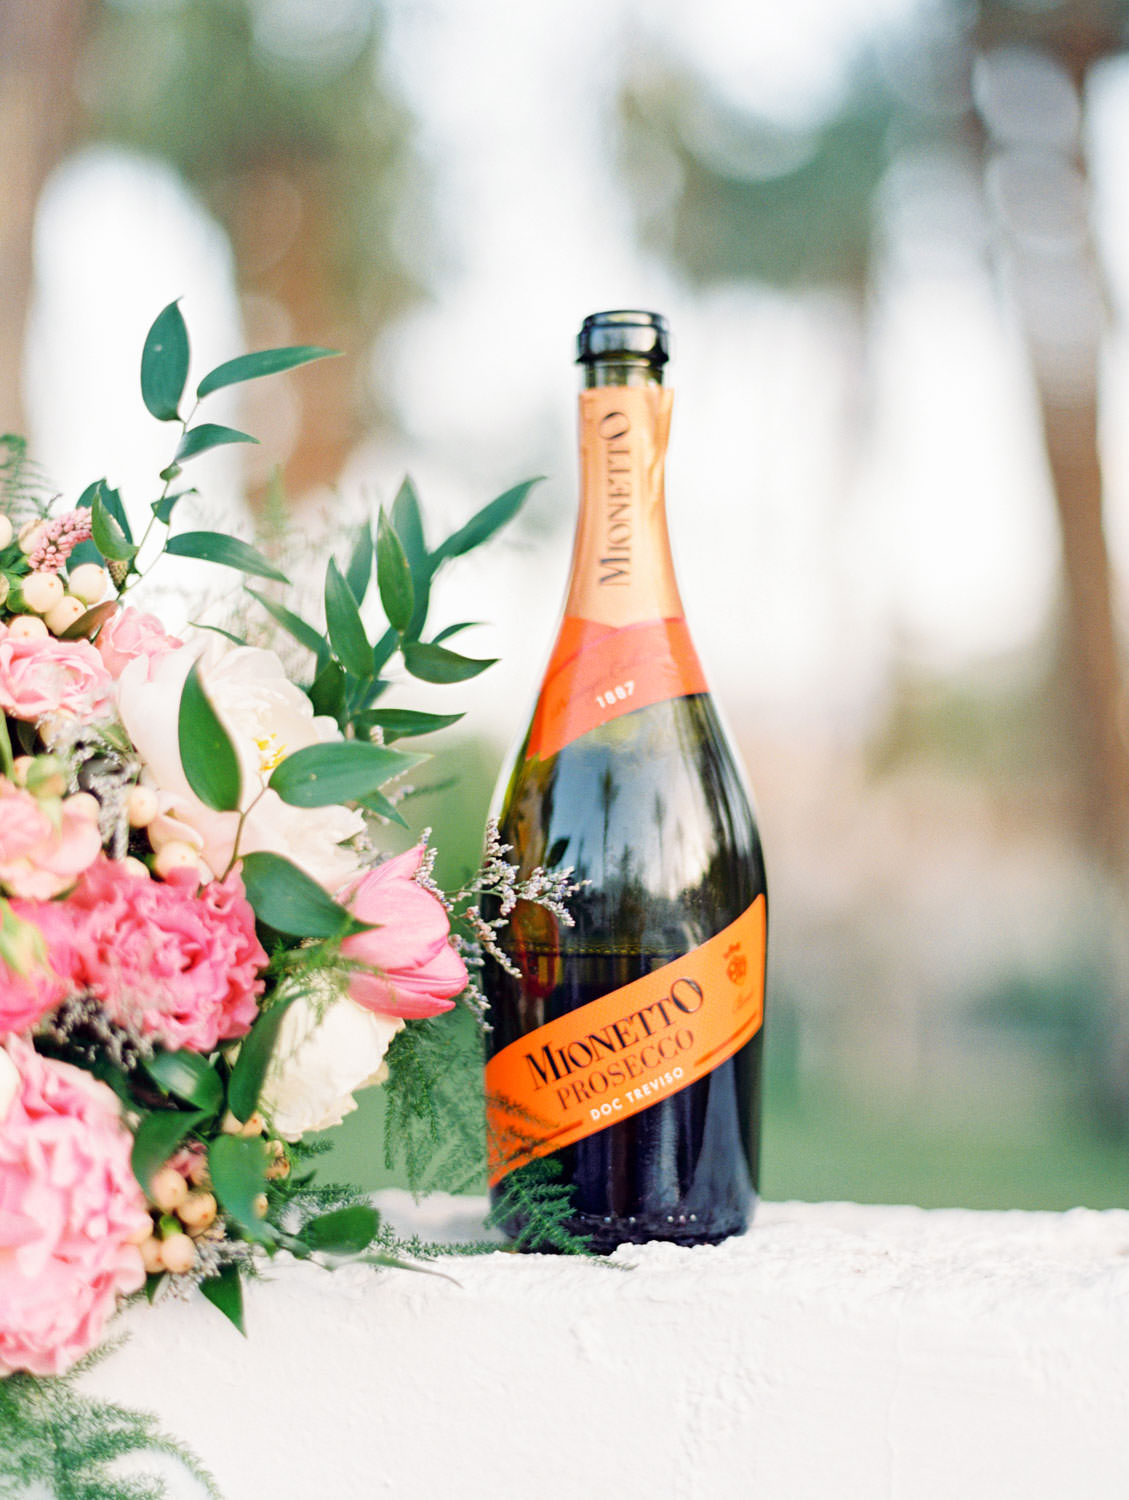 Mionetto Prosecco Doc Treviso. La Quinta Resort Engagement Photos on Film by Cavin Elizabeth Photography